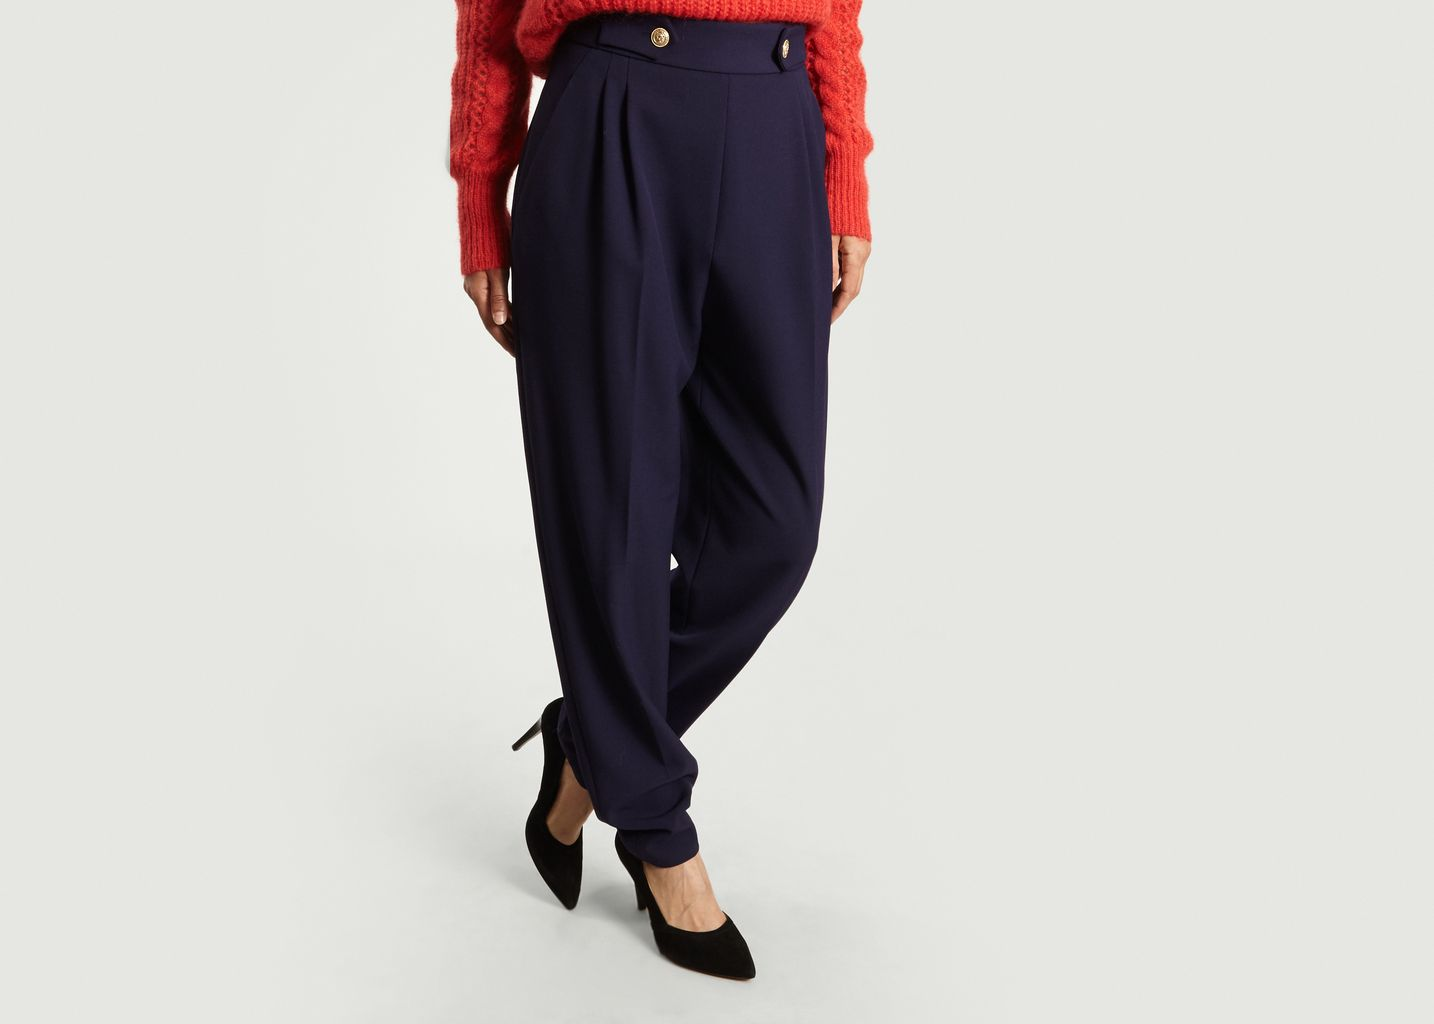 Large Trousers - Tara Jarmon